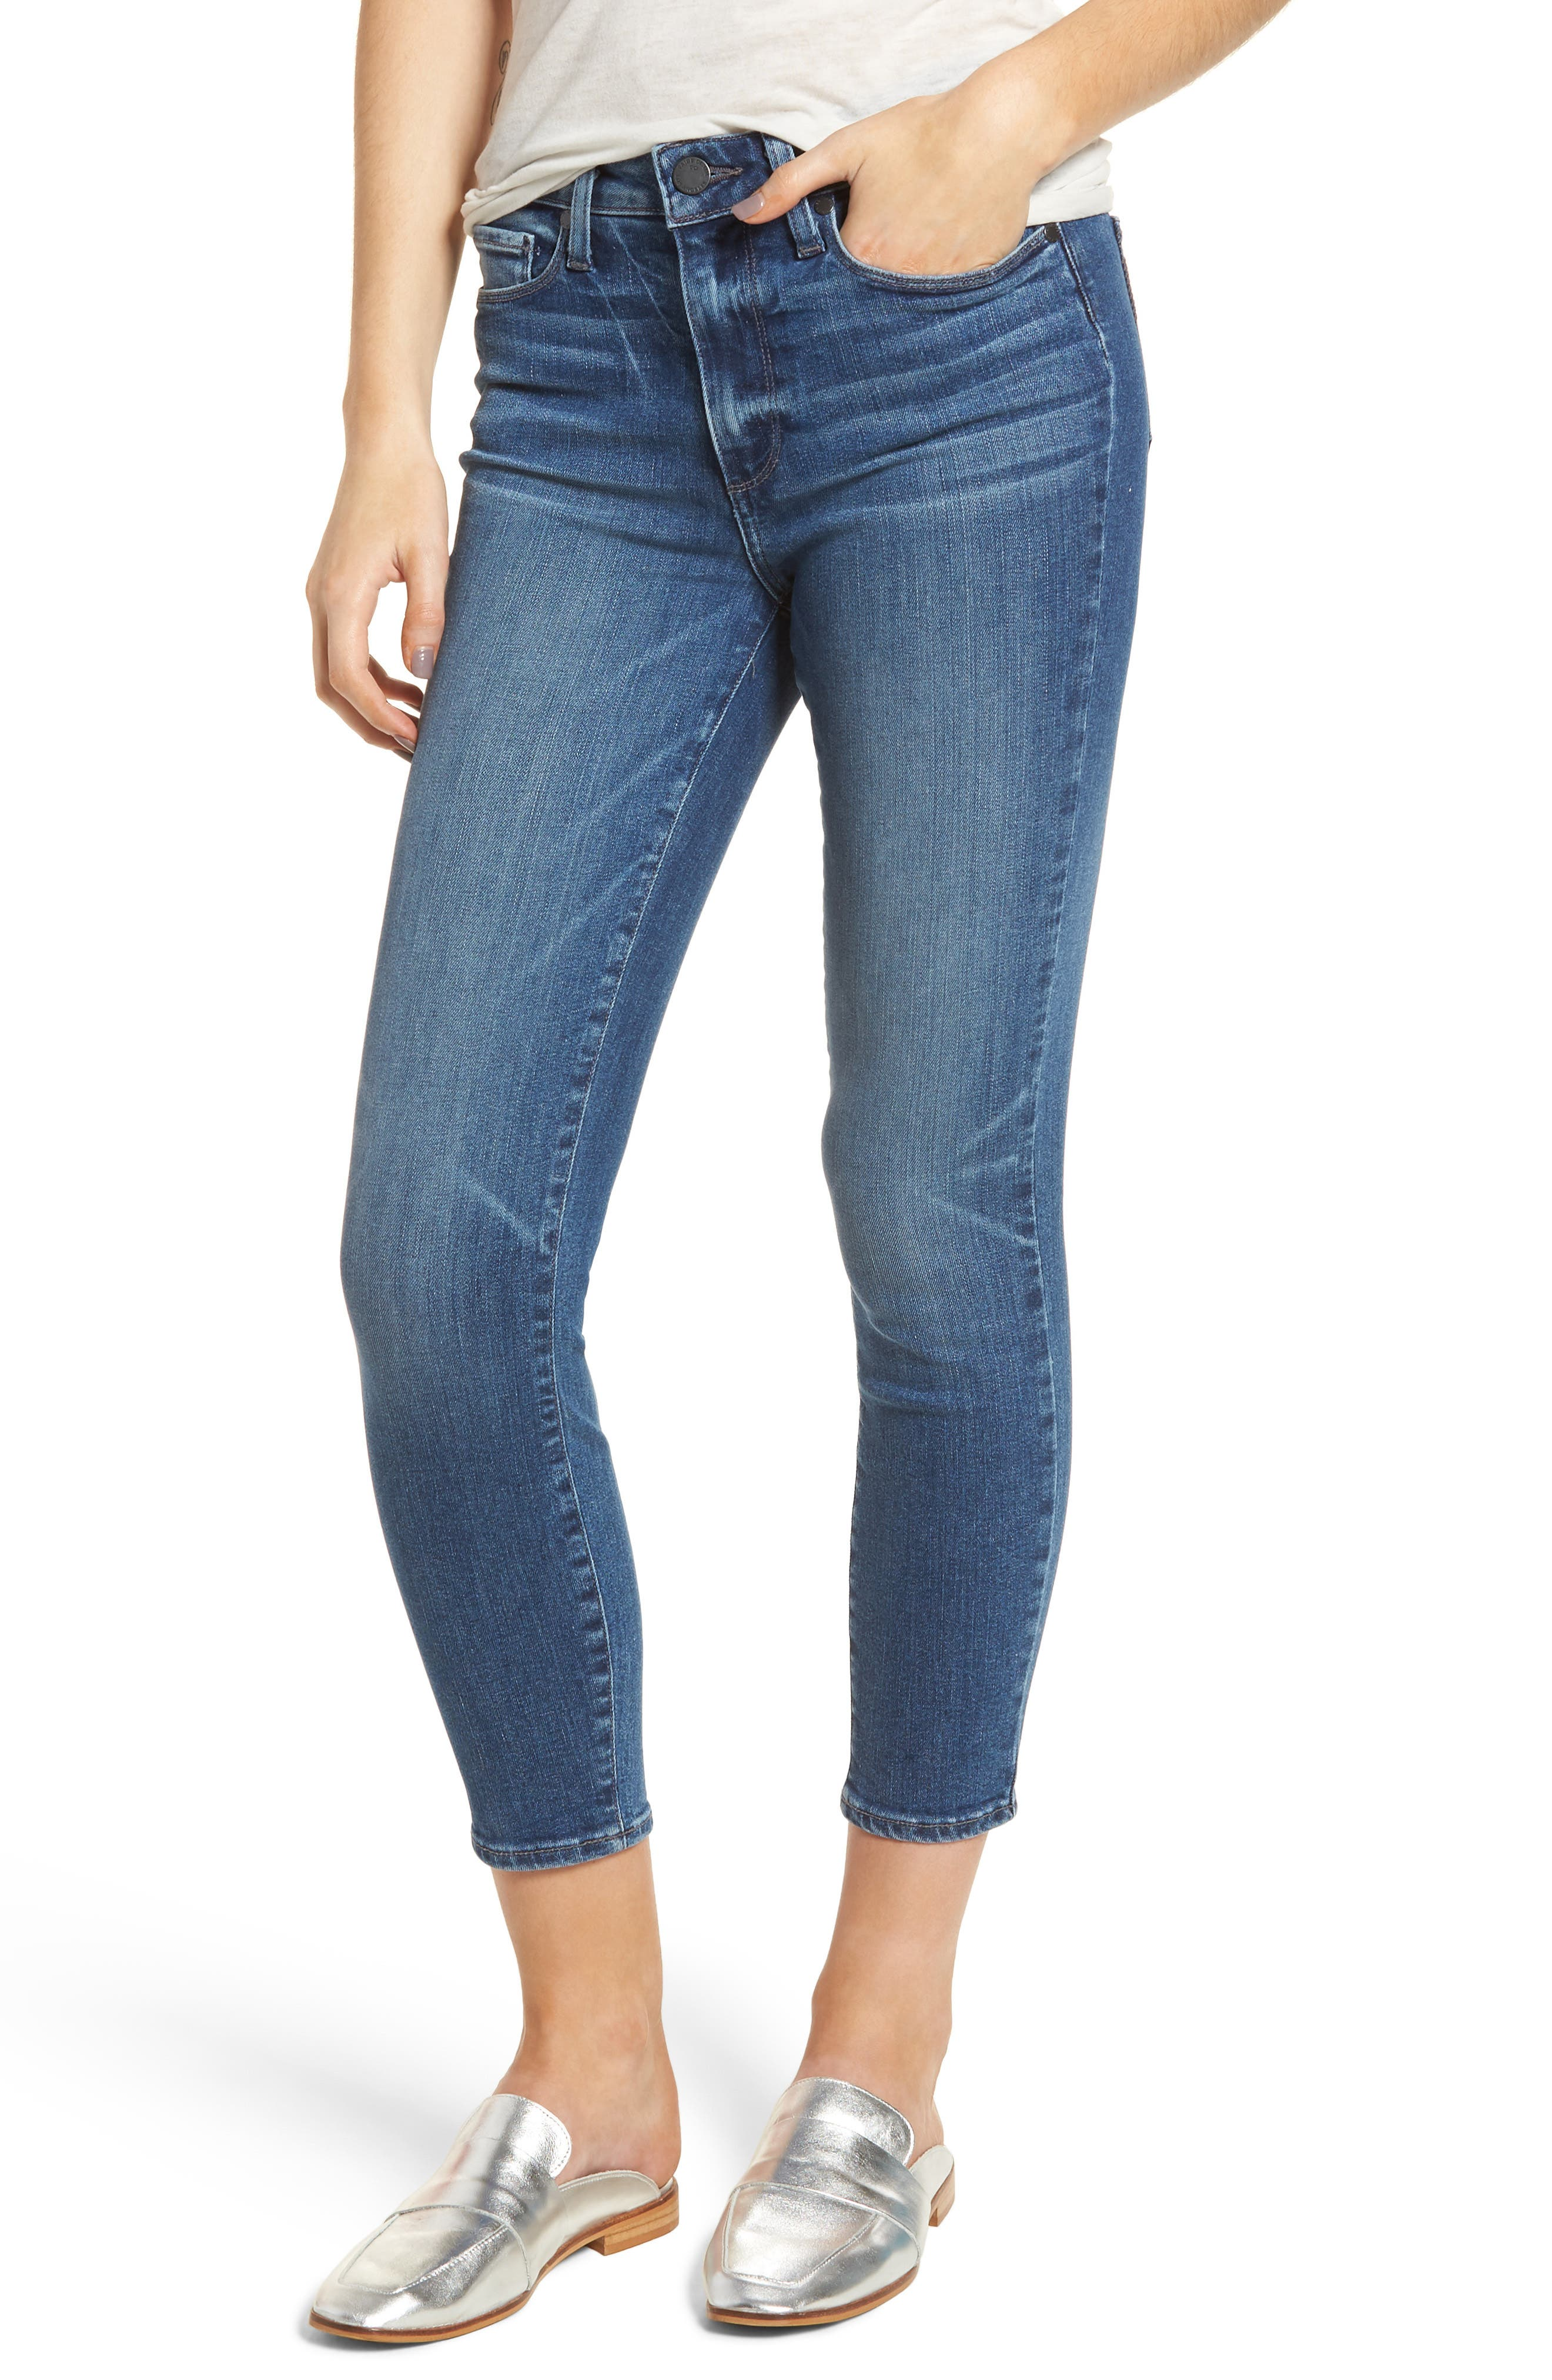 Hoxton High Waist Ankle Skinny Jeans,                         Main,                         color, Bloomfield